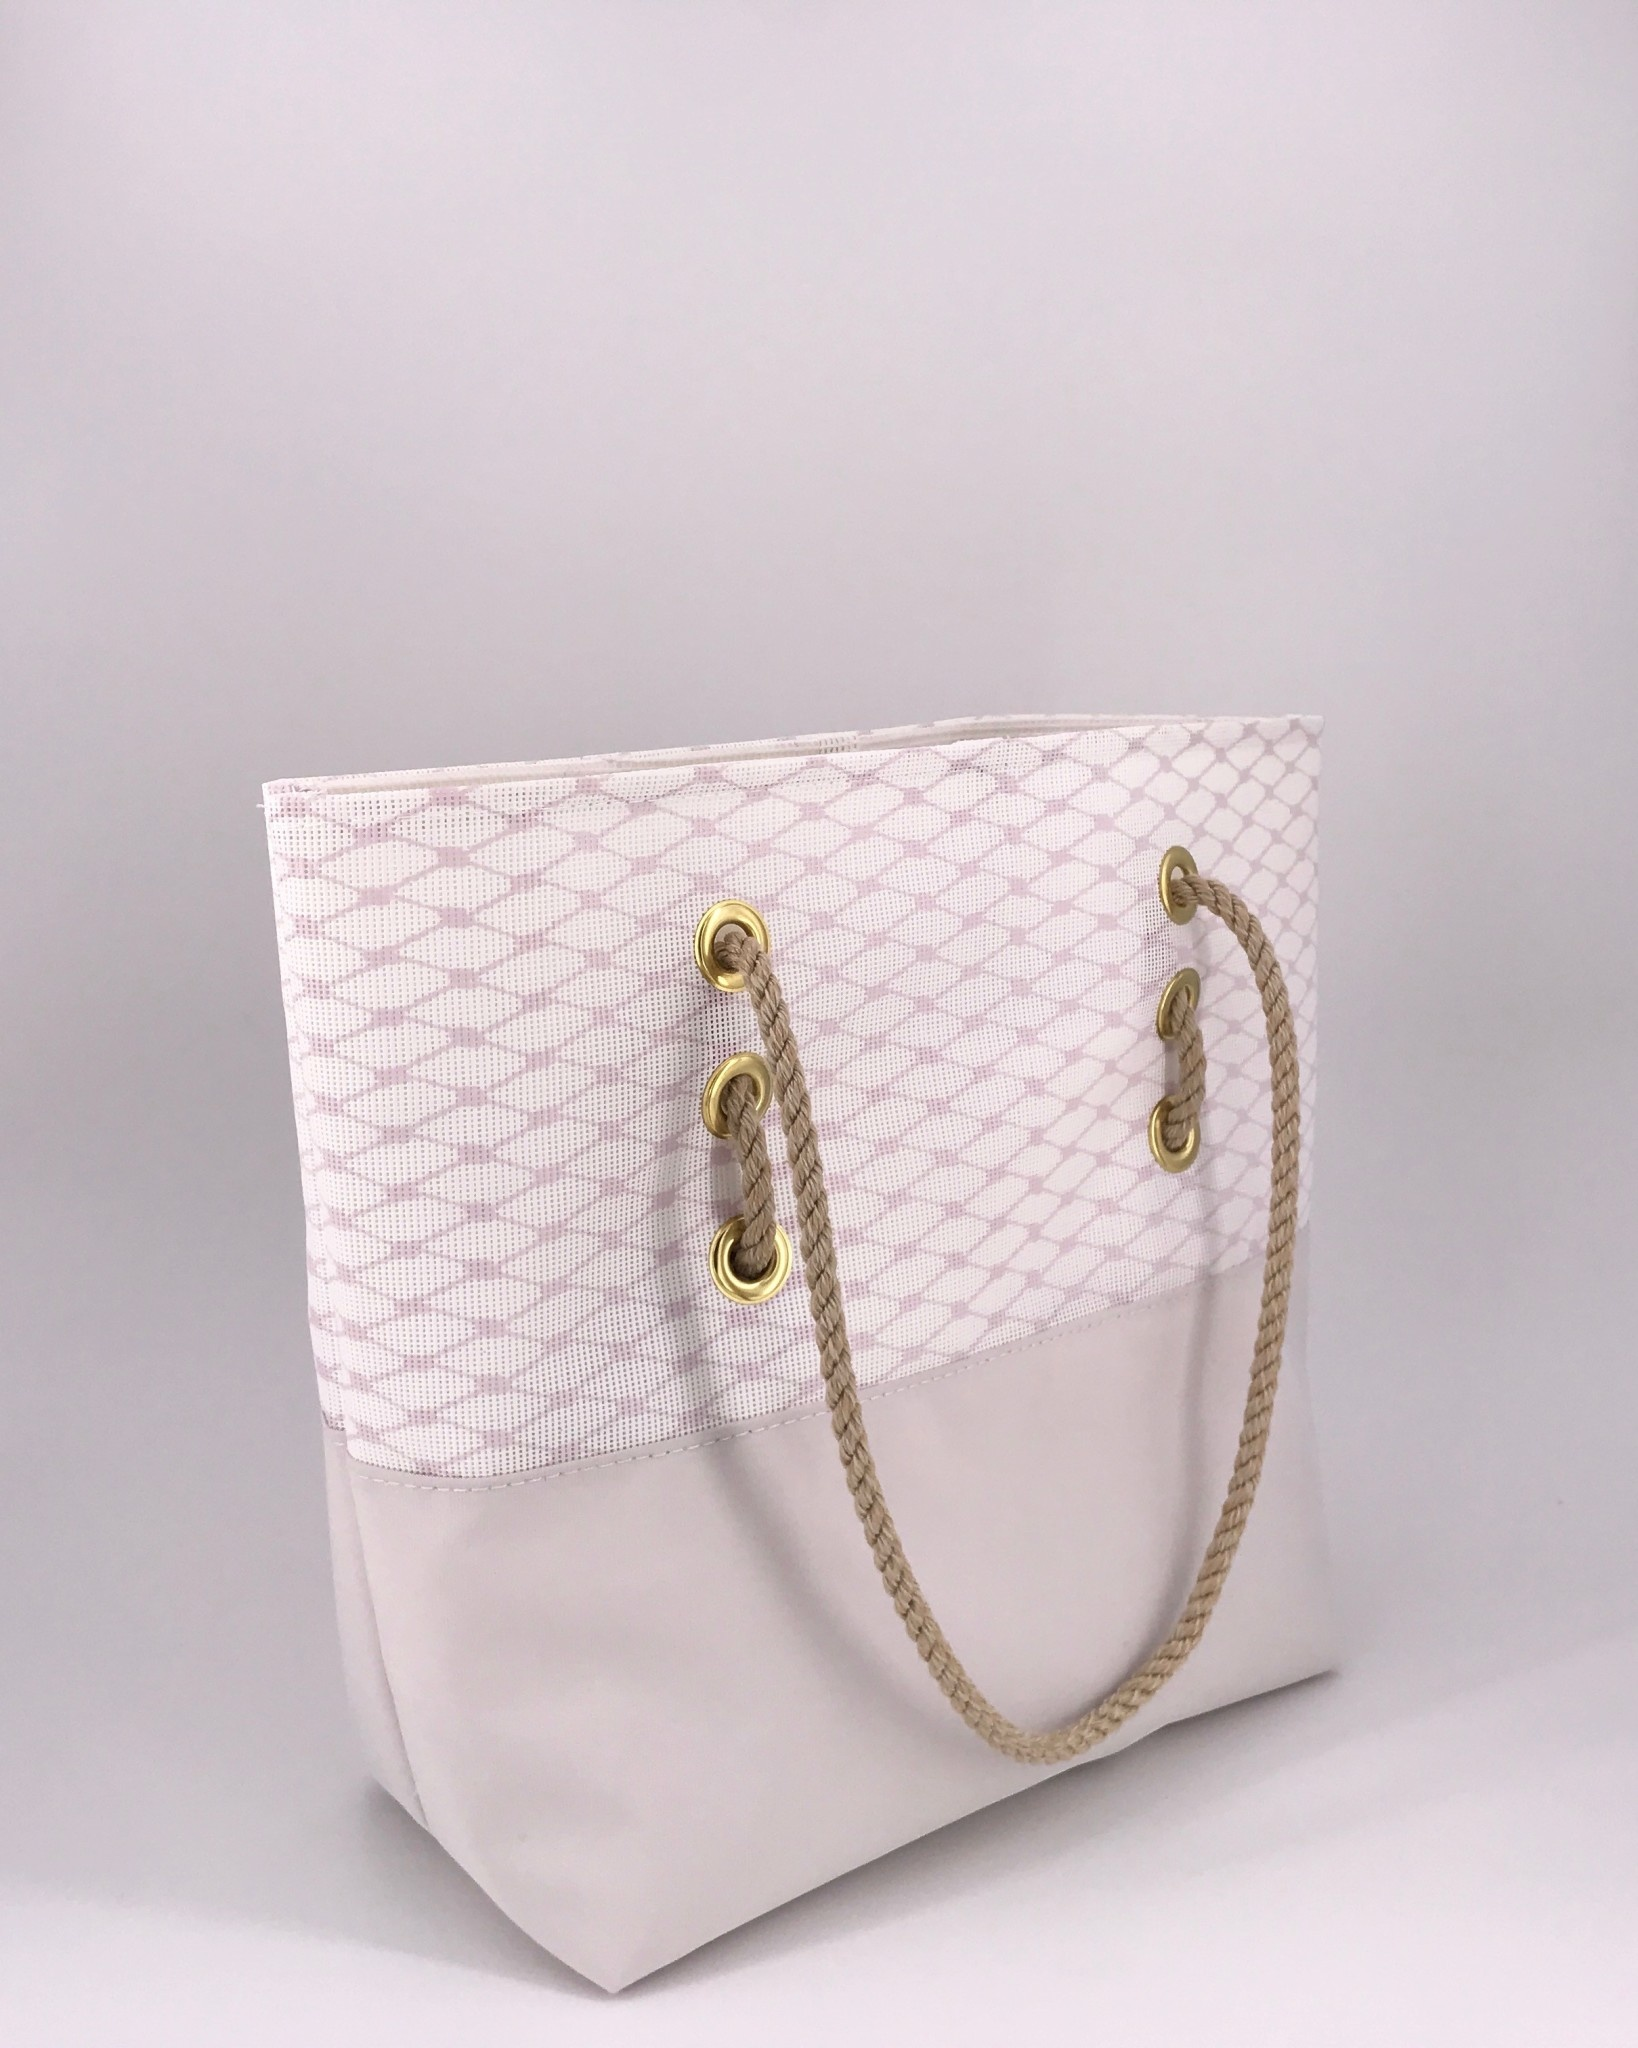 Alaina Marie ® Almost Mauve & Oyster Tote